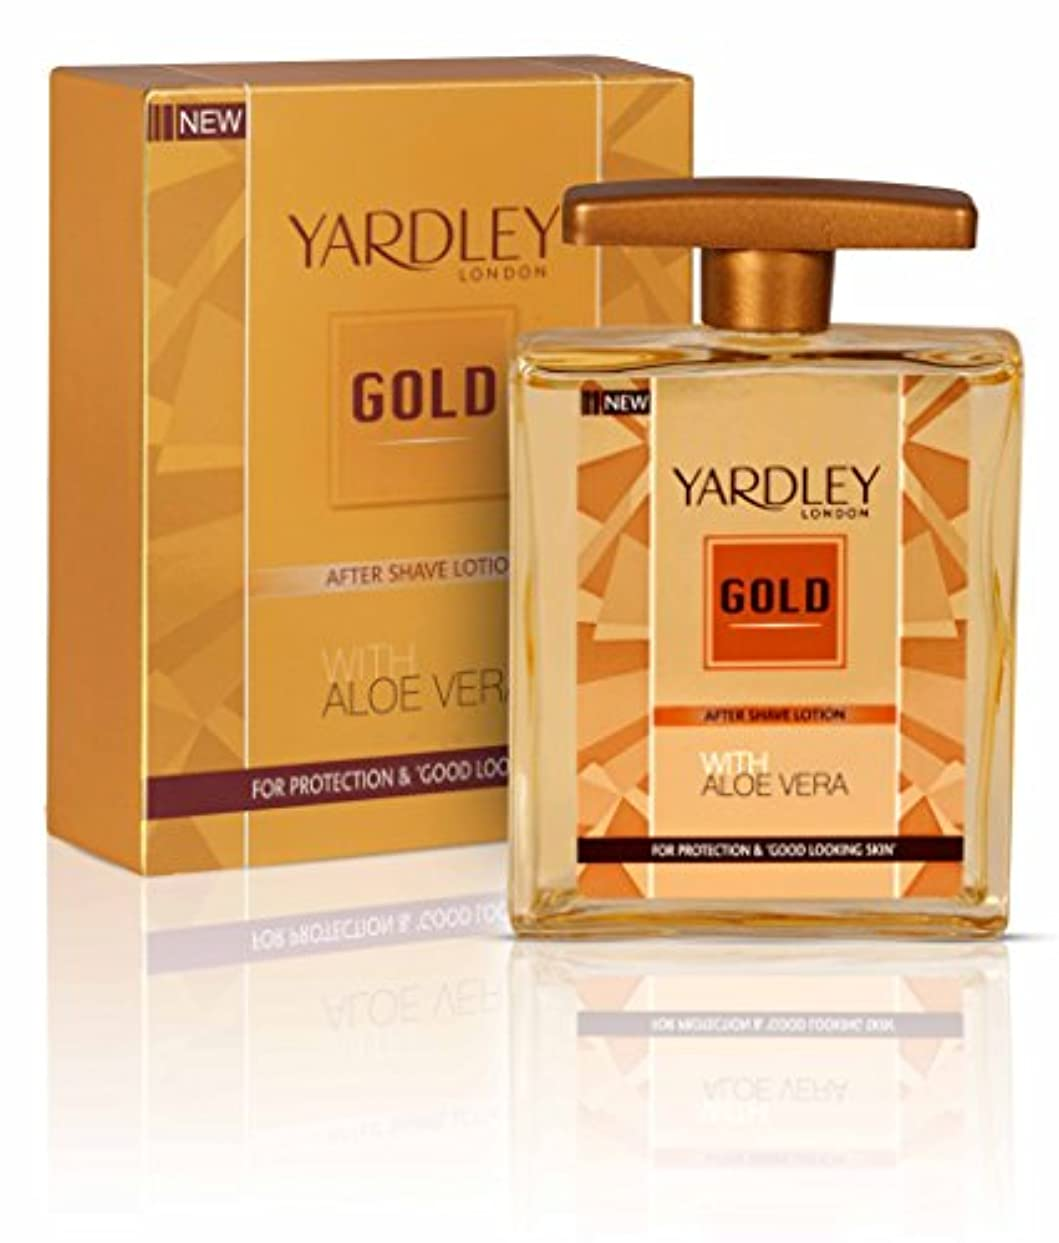 先見の明リサイクルする確認するYardley London After Shave Lotion Gold 100ml by Yardley